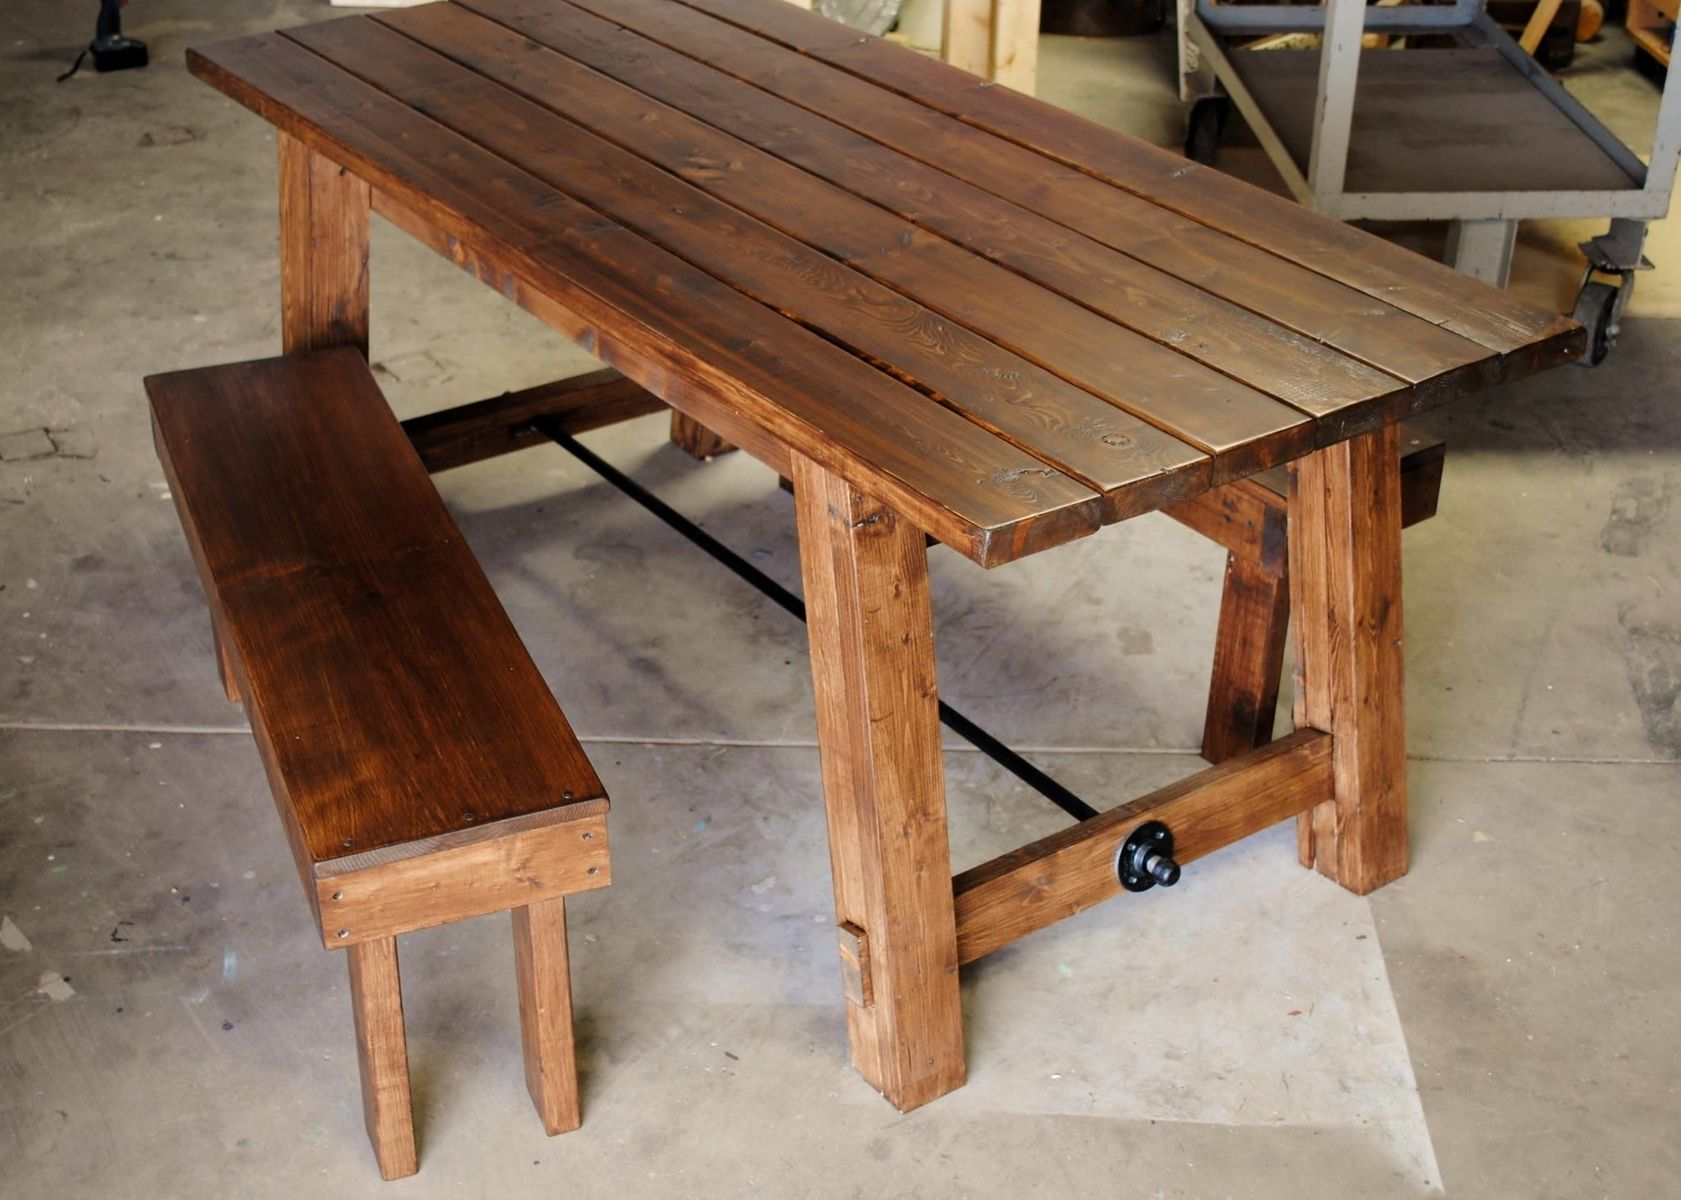 Hand Made Farmhouse Table by Sb Designs : CustomMade.com